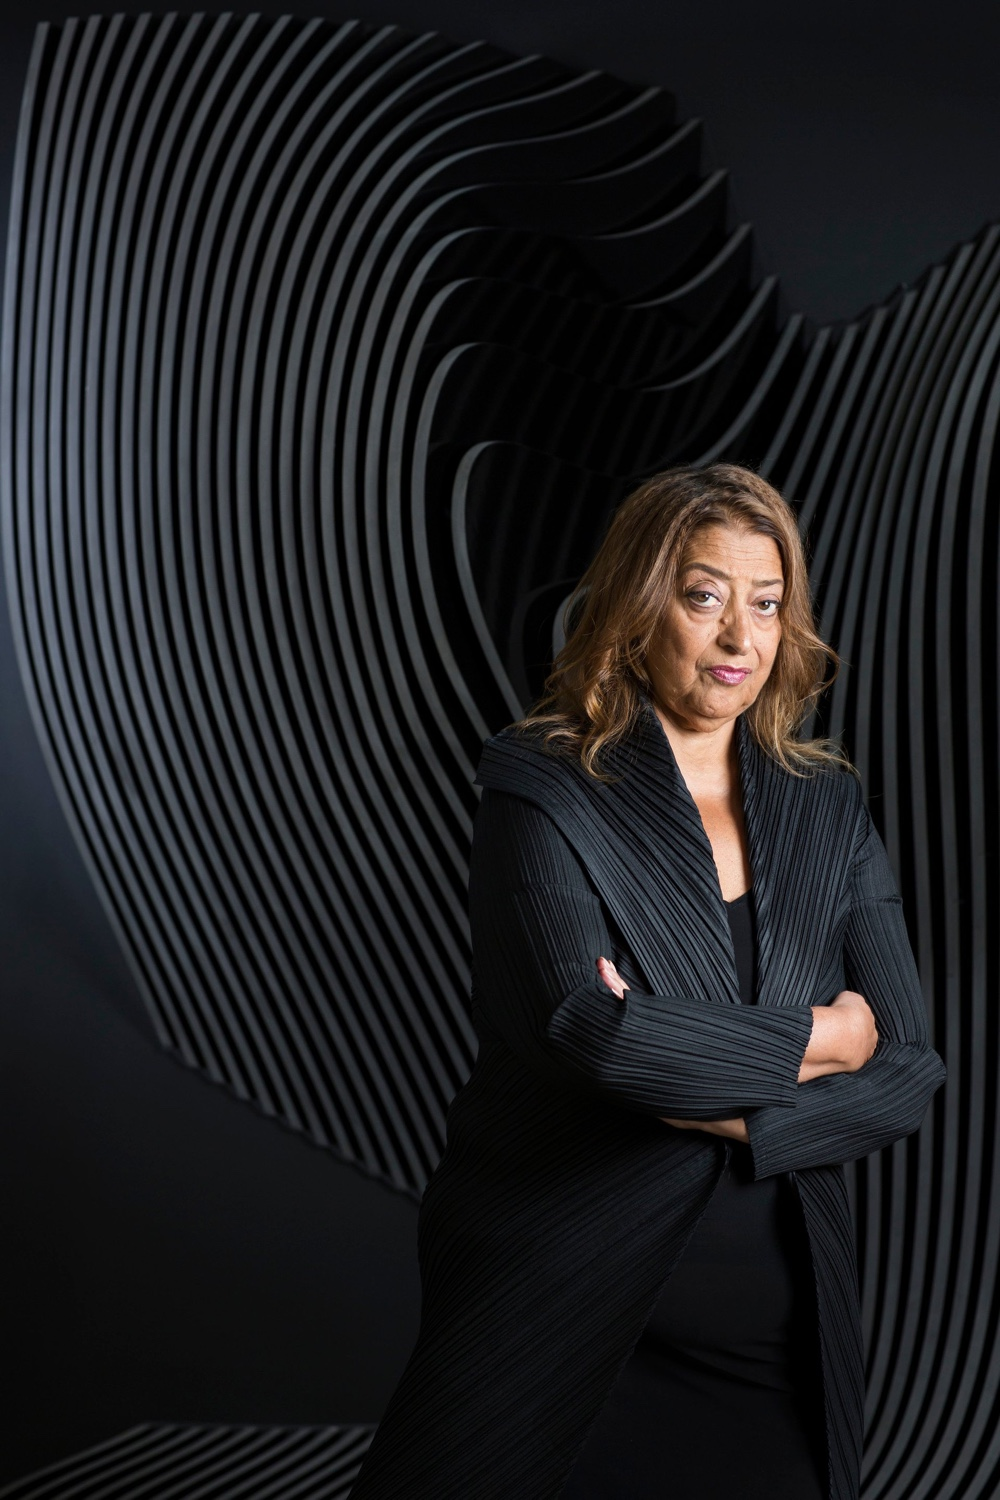 Zaha Hadid photographed by David Levene